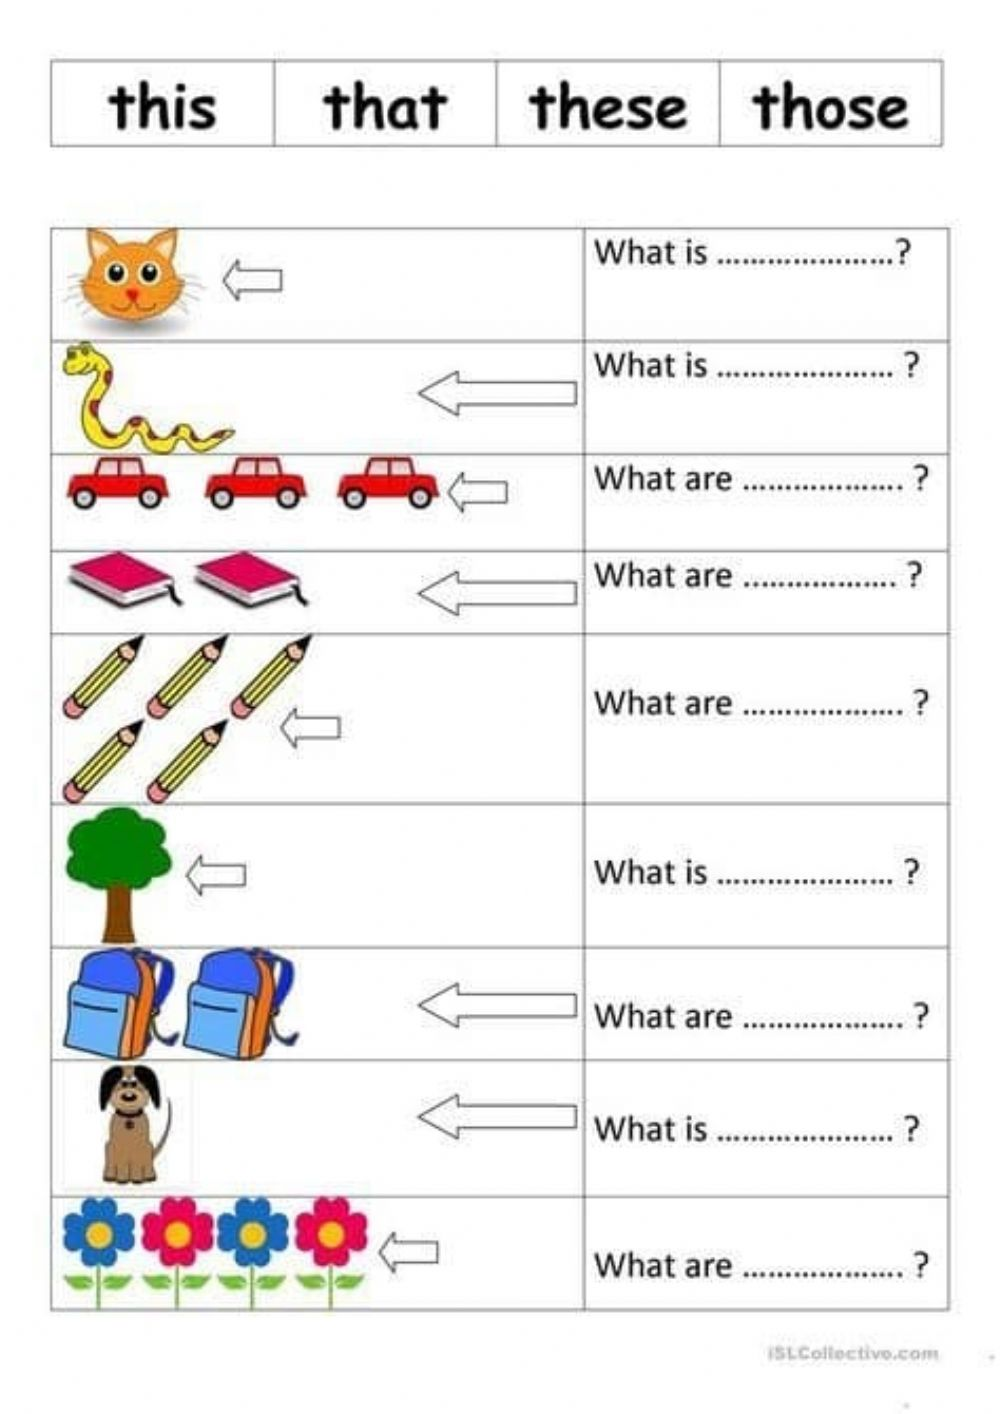 medium resolution of Demonstrative pronouns interactive activity for Kids